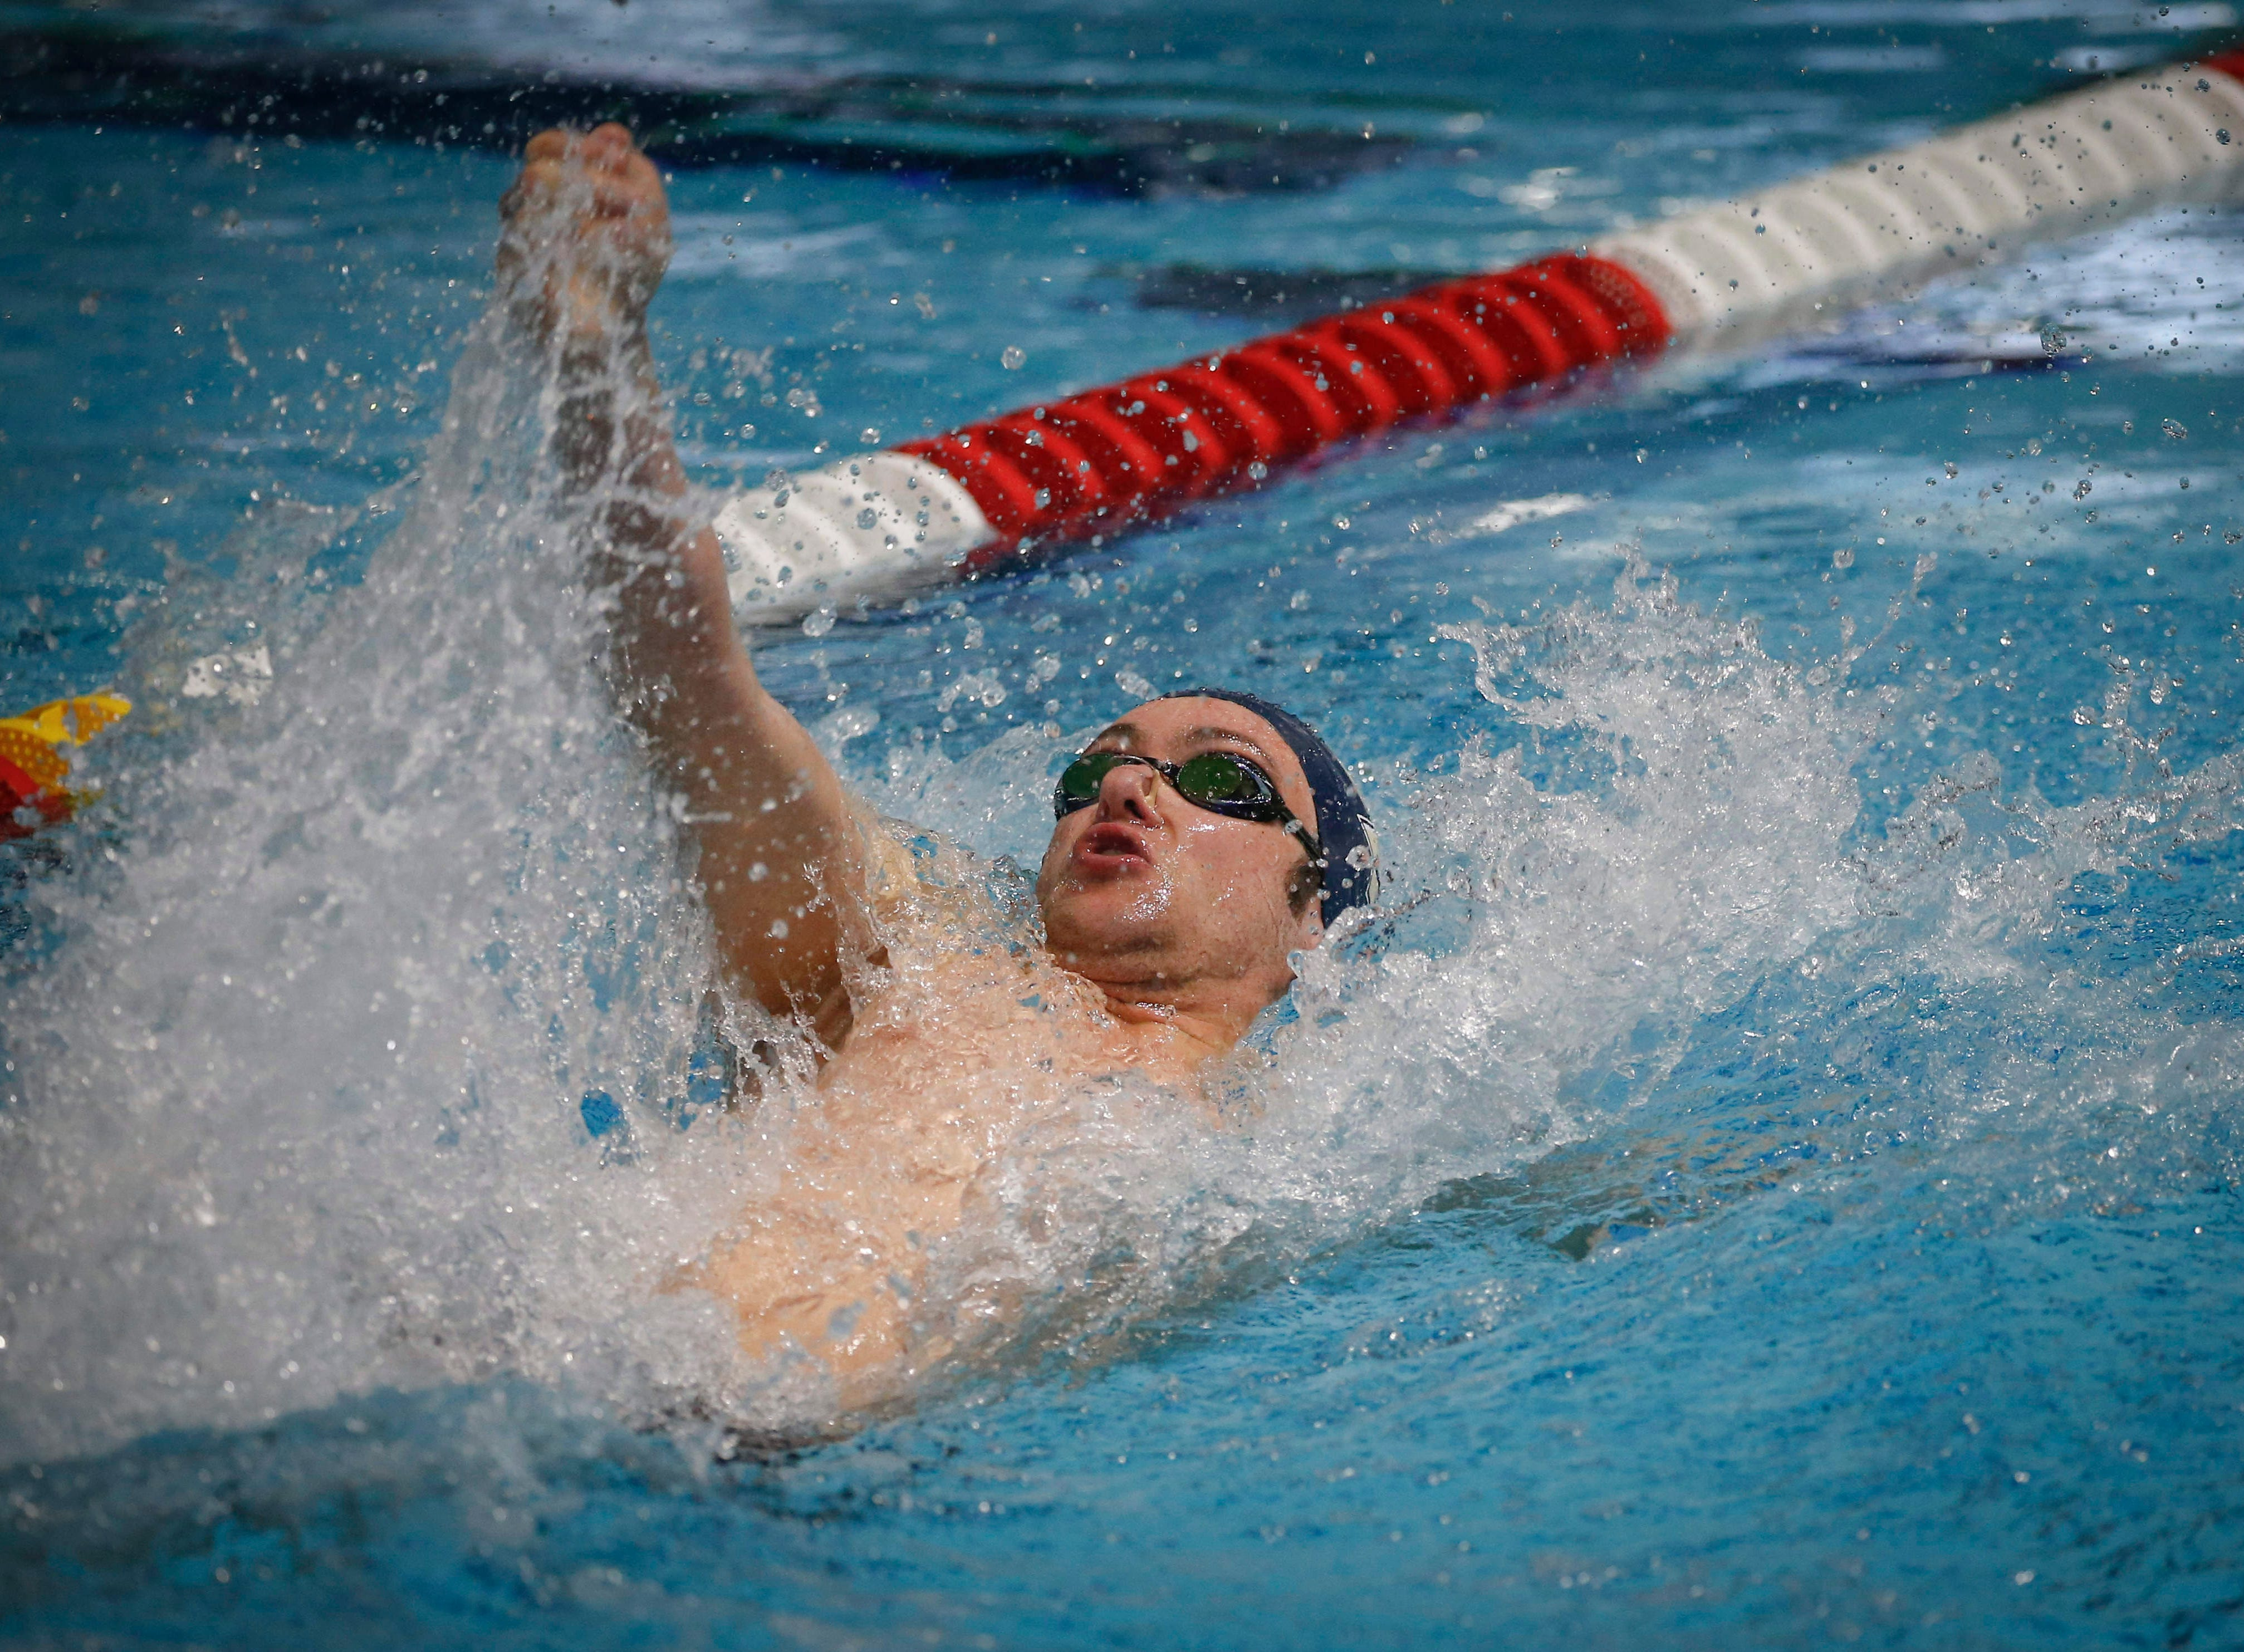 Ryan Patterson of Omaha and a swimmer at George Washington University, competes in the 50-meter backstroke during the 2019 TYR Pro Swim Series on Thursday, March 7, 2019, at the downtown YMCA pool in Des Moines.